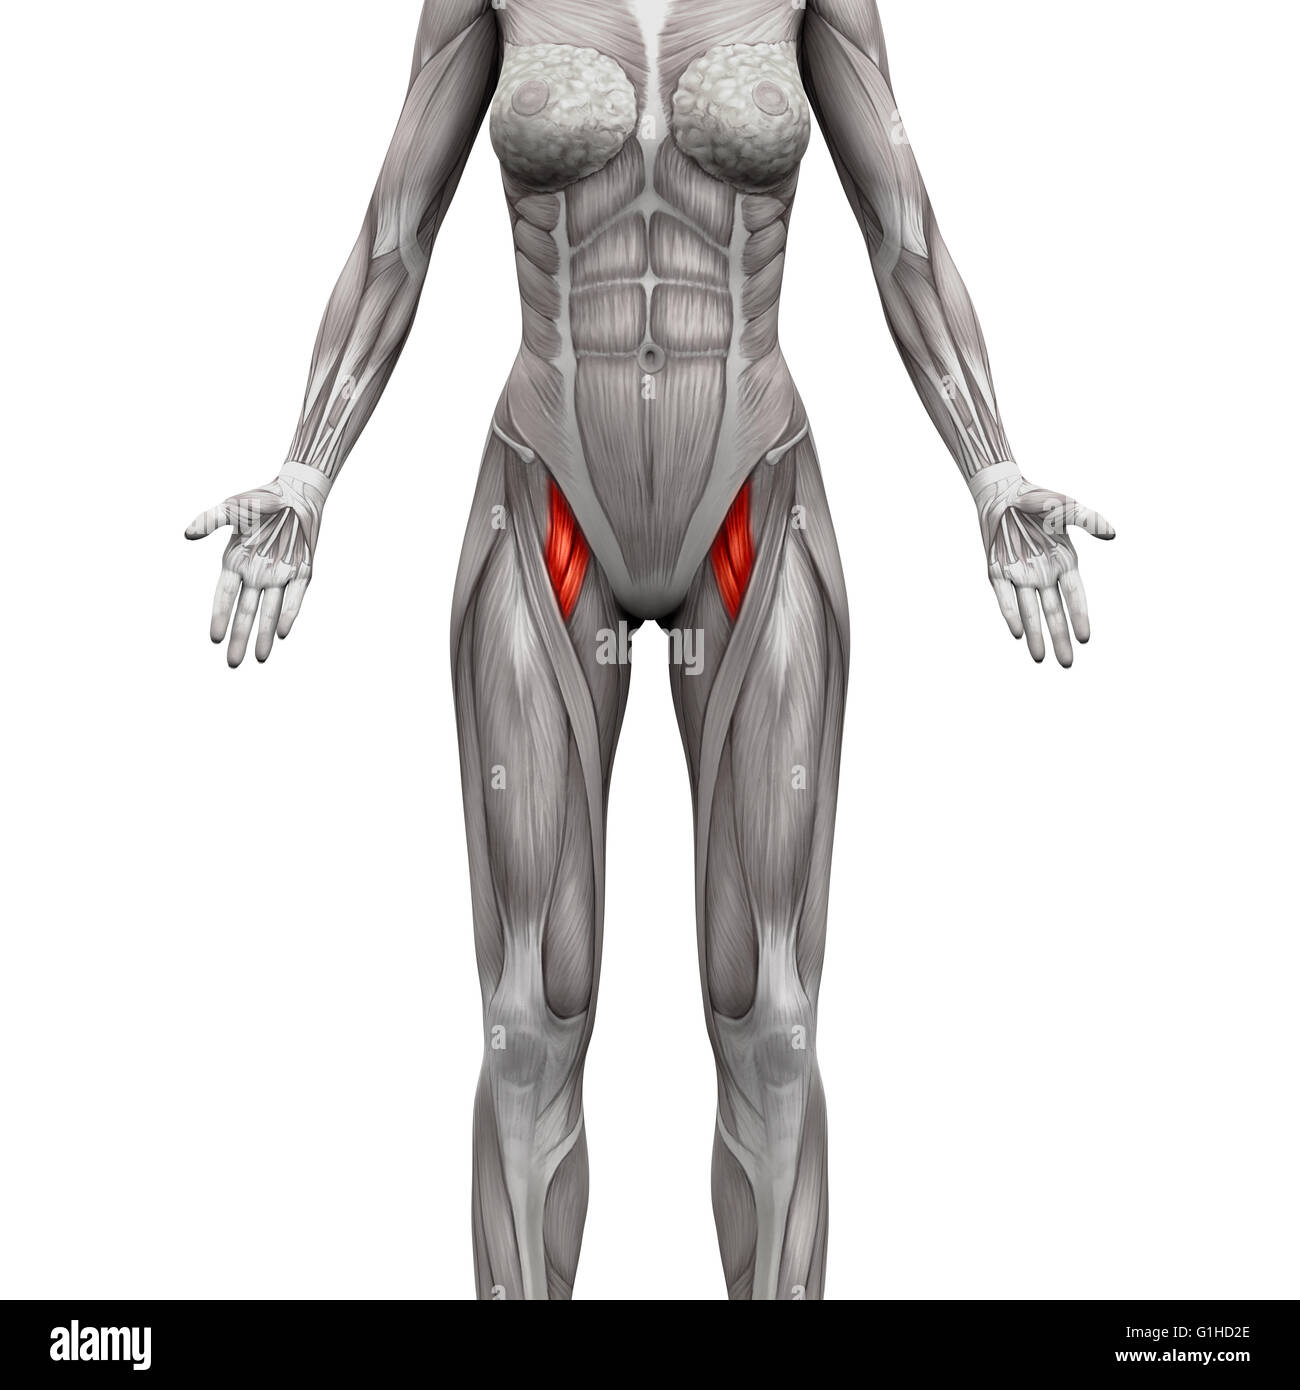 Adductor muscle anatomy